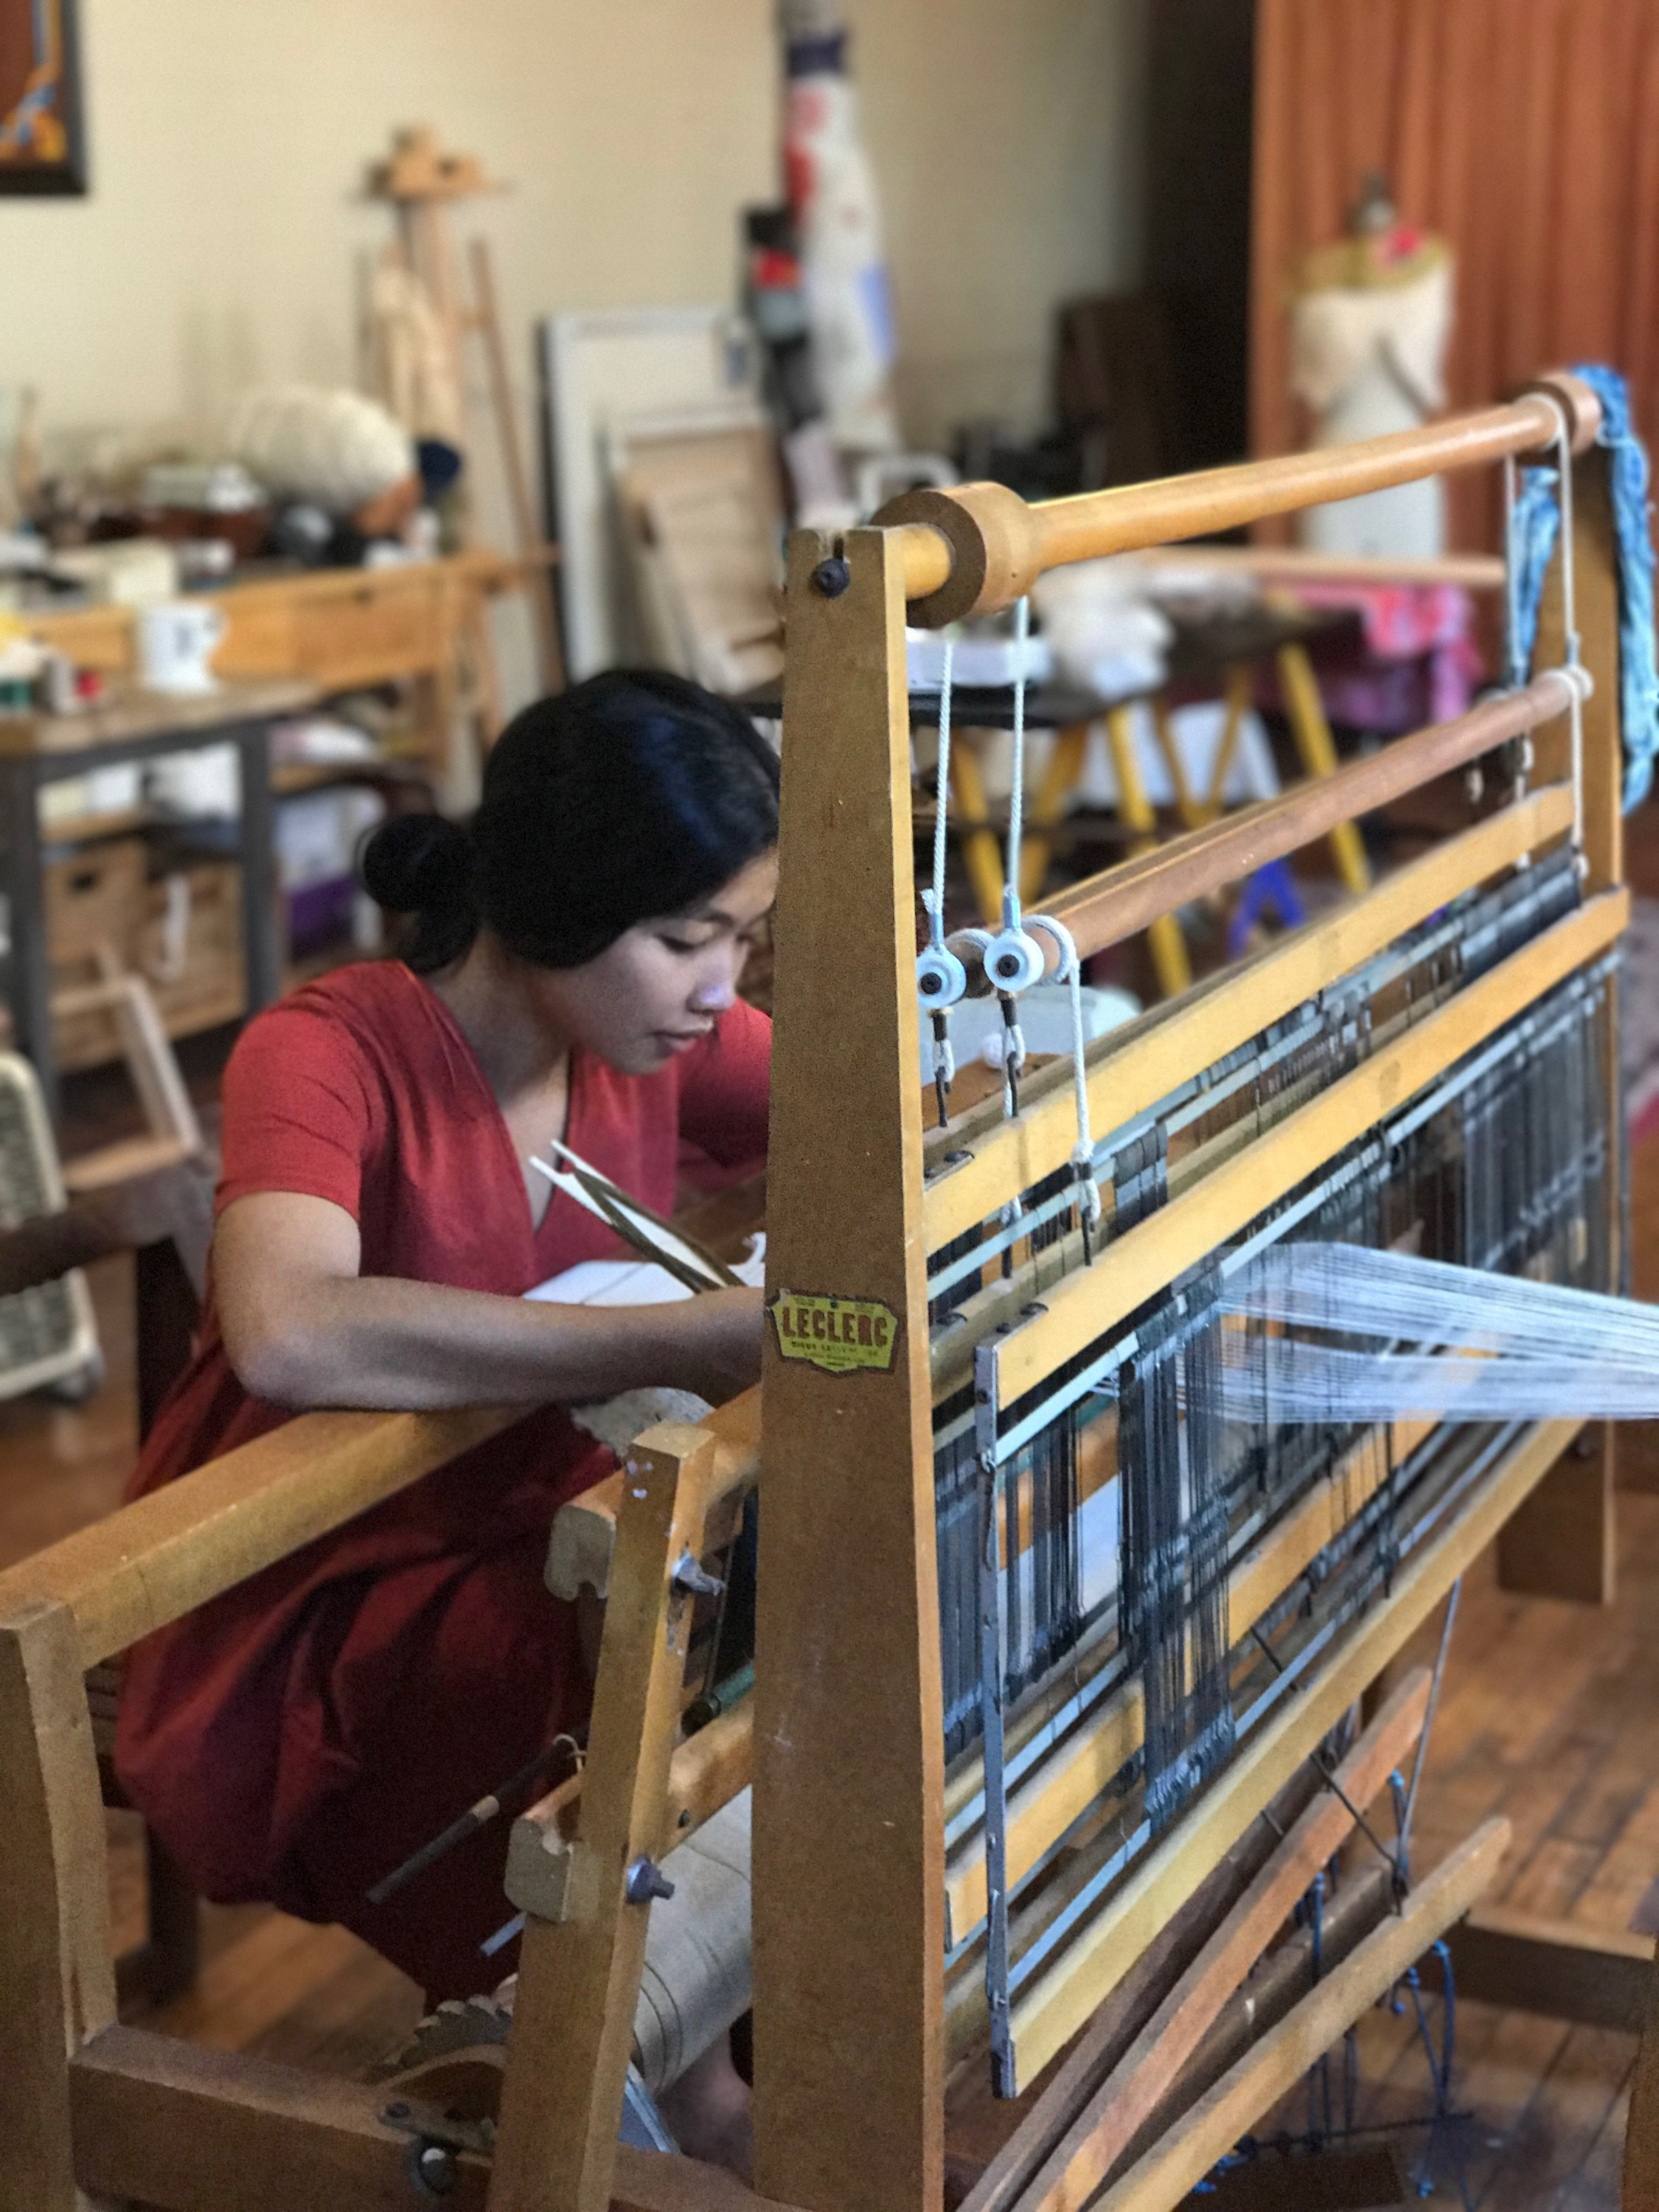 A photo of me weaving on my favorite floor loom in my studio. In the background are yarn, canvases, an easel, a fashion form, drafting table, and shelving for my supplies.